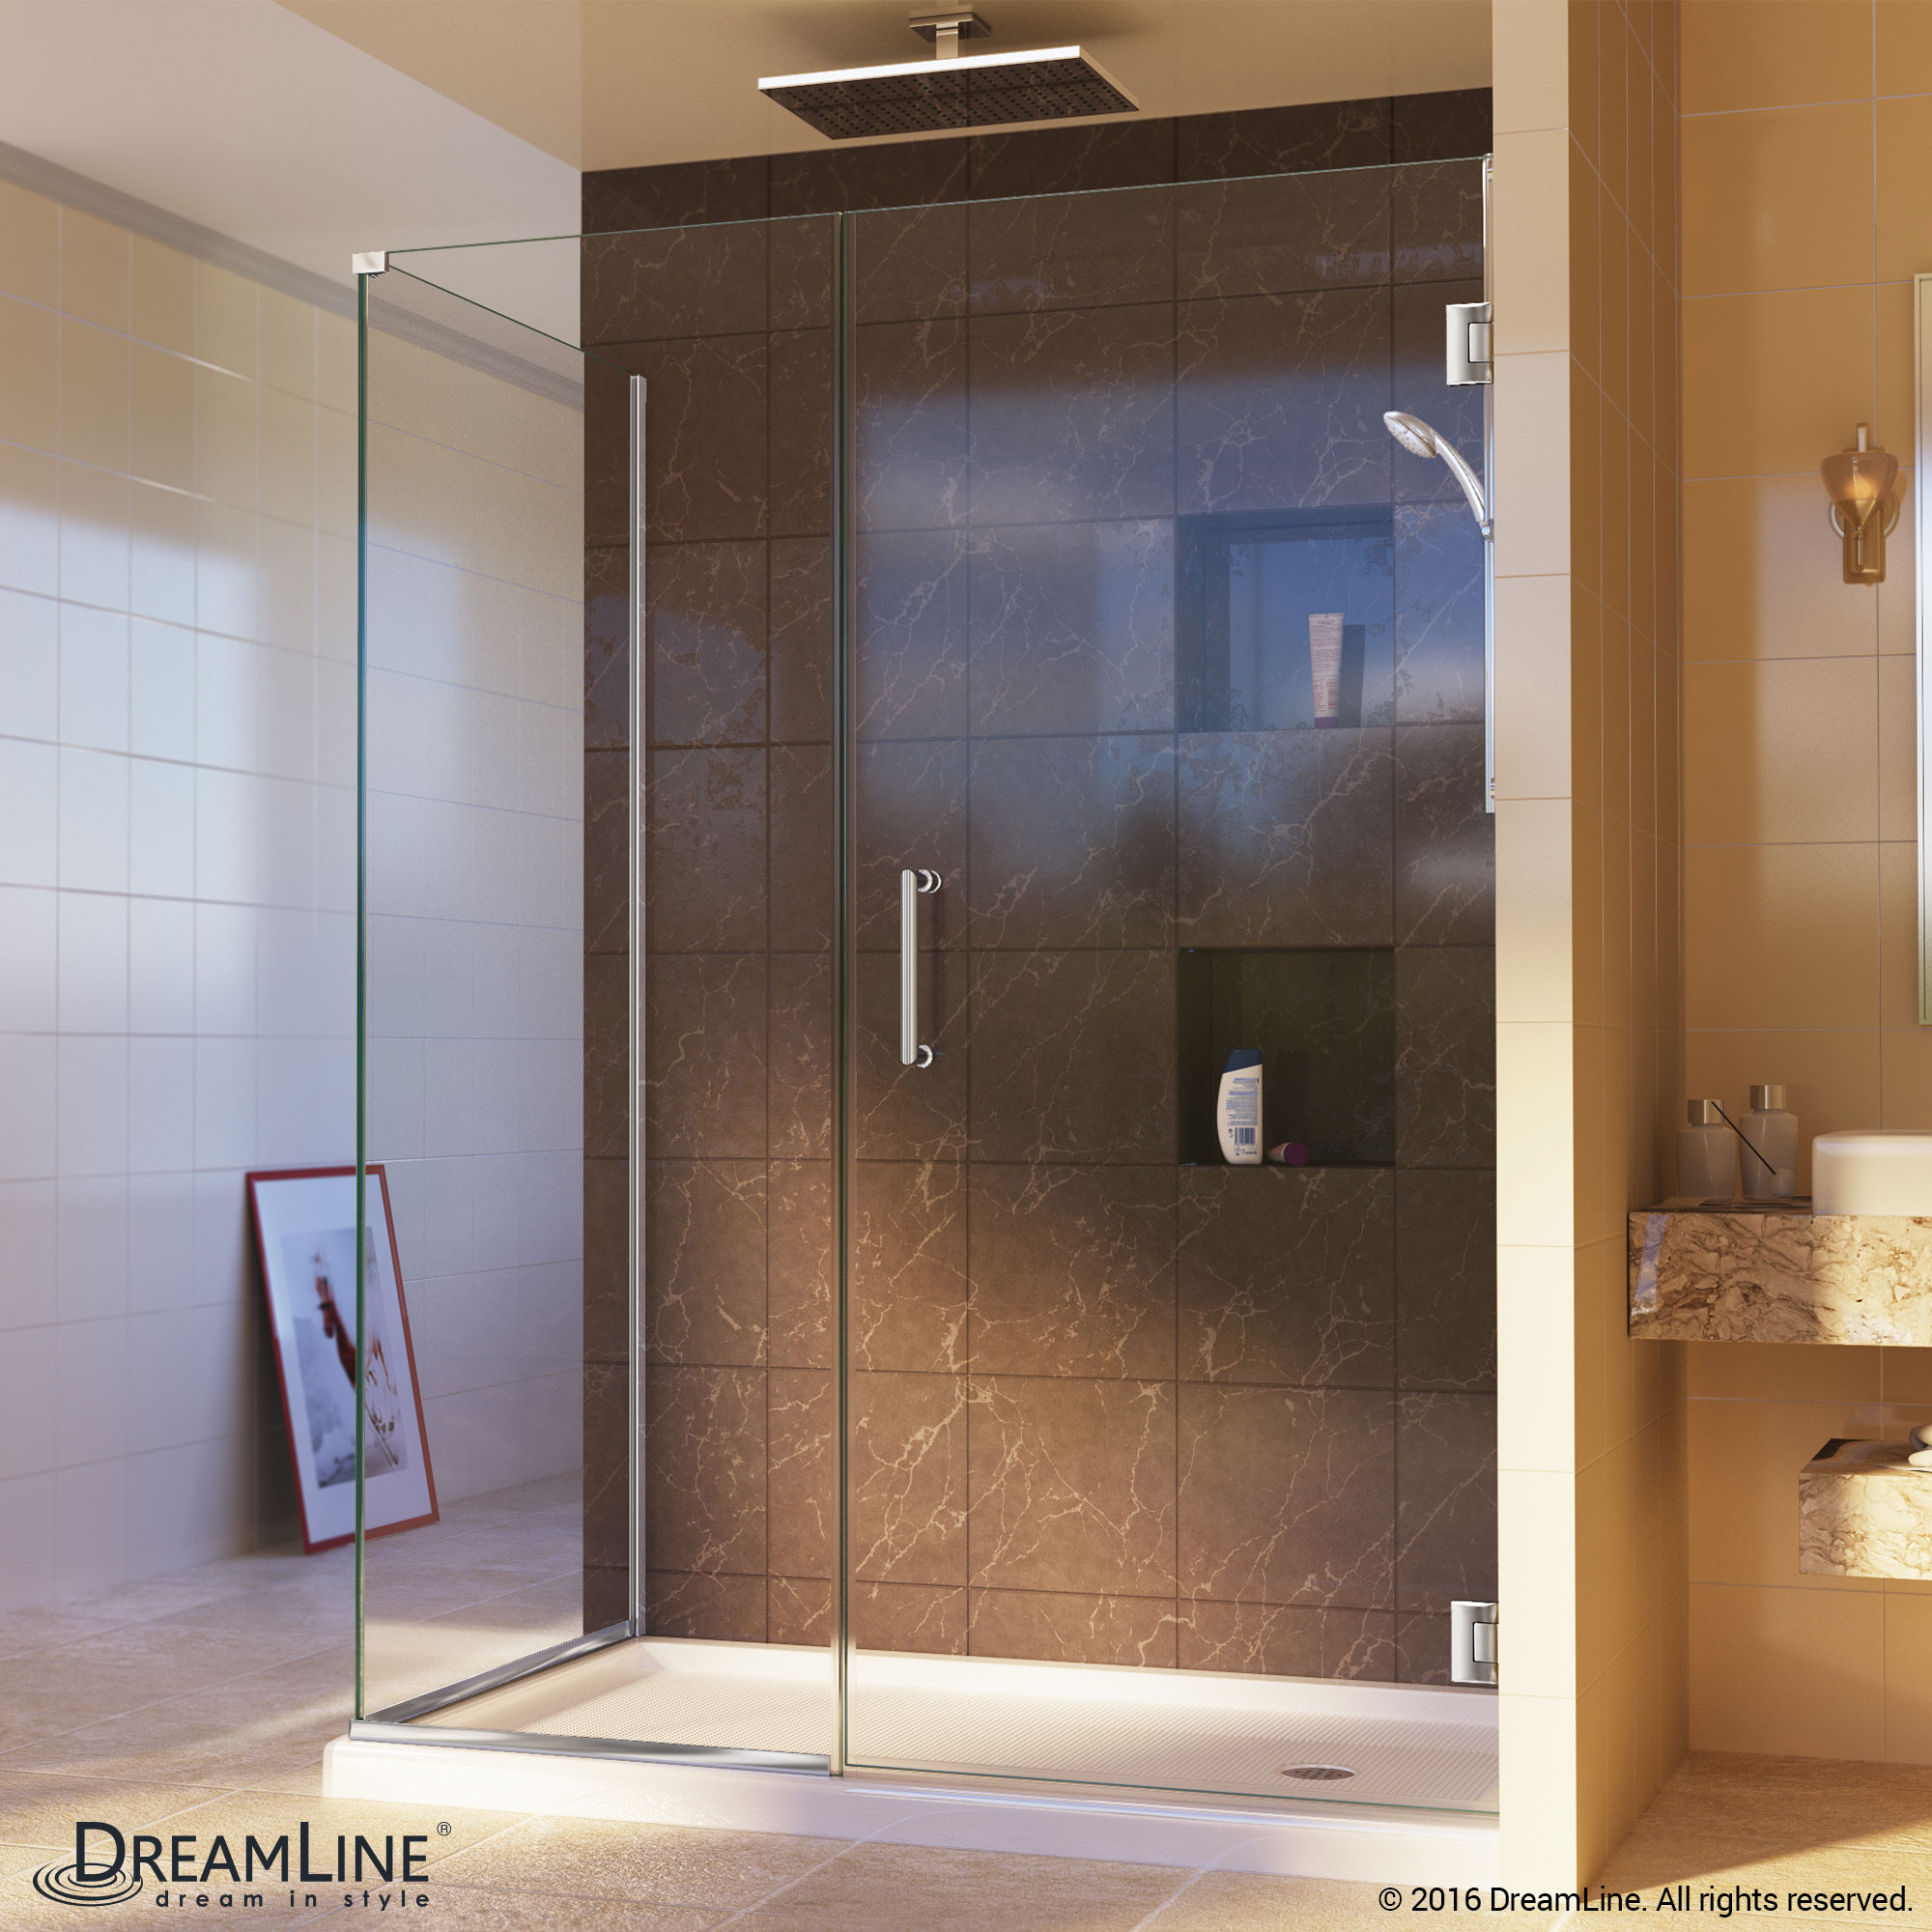 DreamLine SHEN-24455300-01 Unidoor Plus Hinged Shower Enclosure In Chrome Finish Hardware